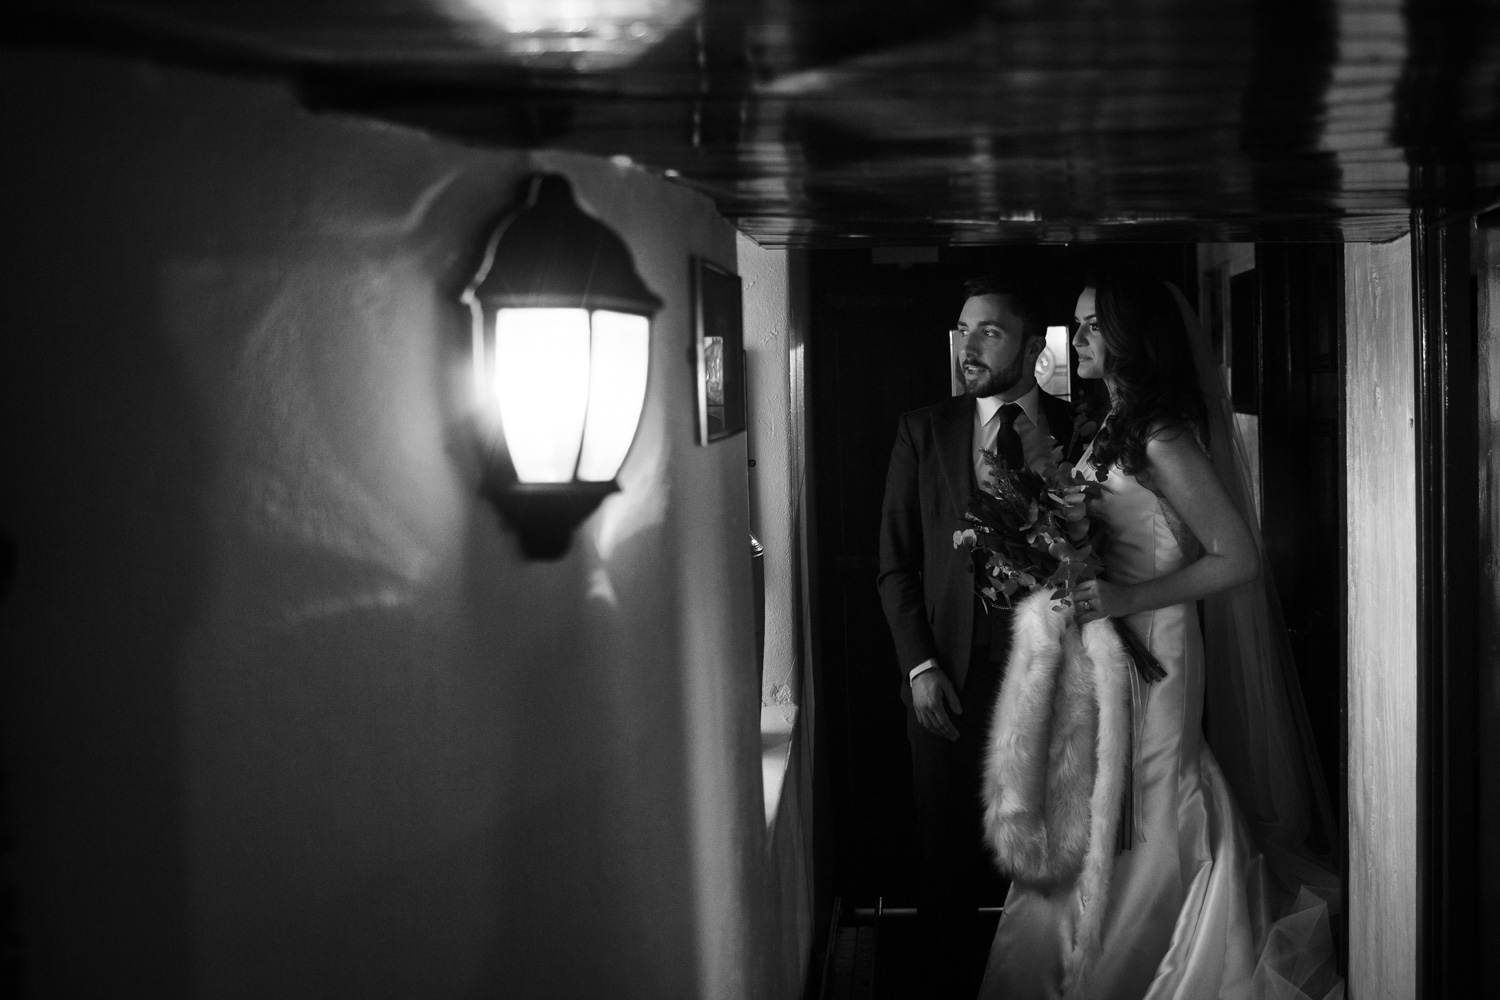 Mark_Barnes_wedding_photographer_Northern_Ireland_Wedding_photography_Wedding_photography_Greenvale_Cookstown_wedding_photography_Majella&Ryan-50.jpg